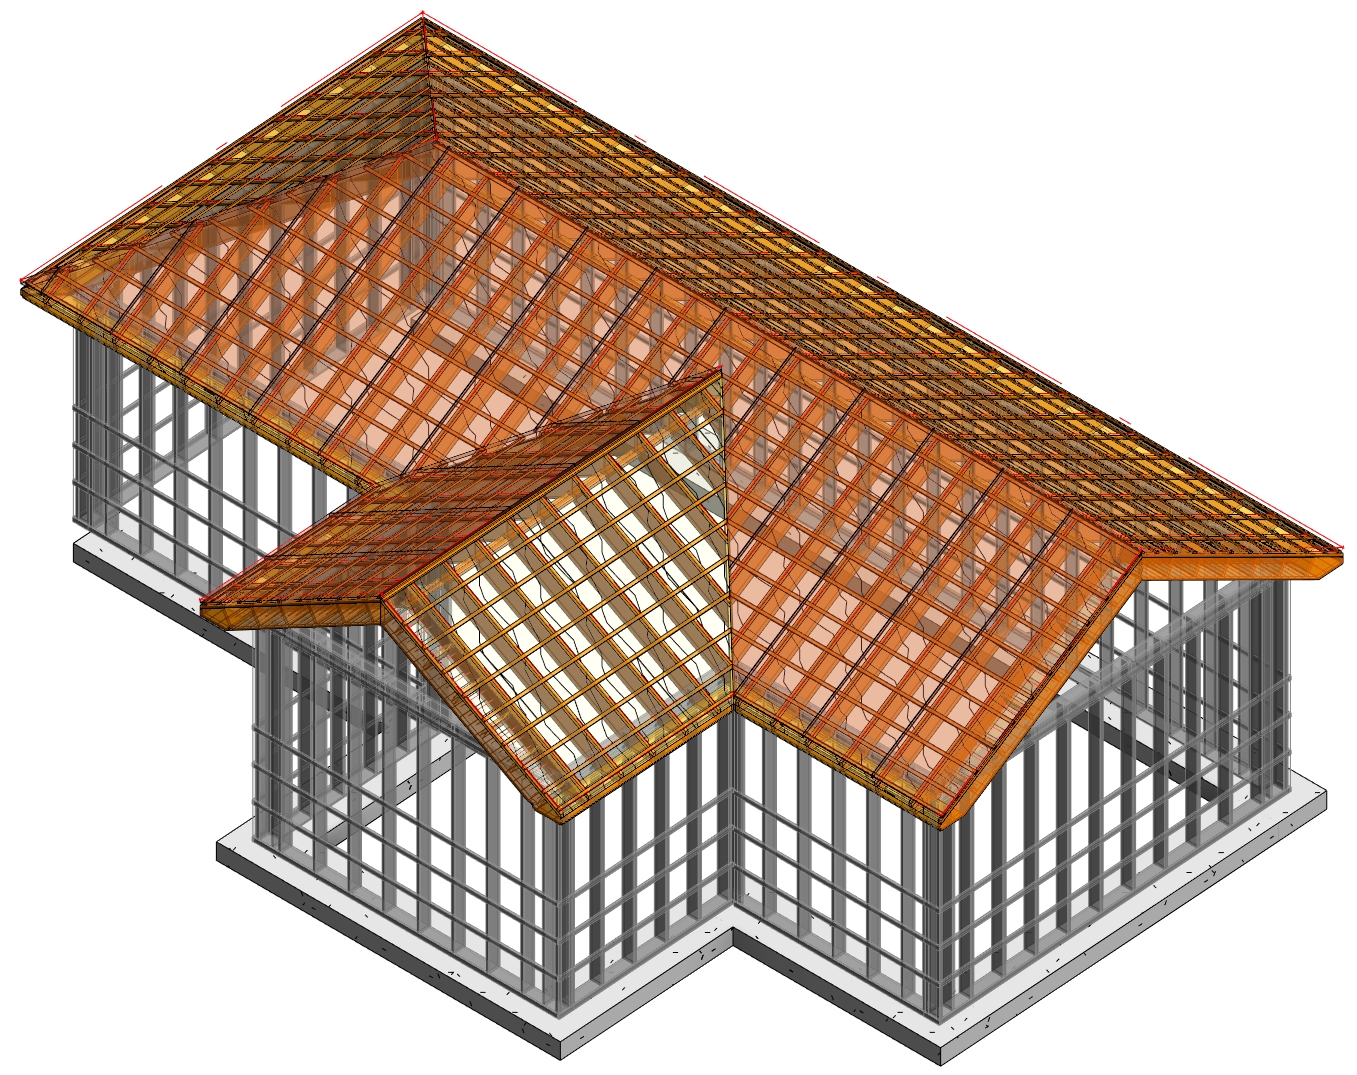 multilayer prefab timber roof panels framed in Autodesk Revit using AGACAD Roof Framing BIM tools